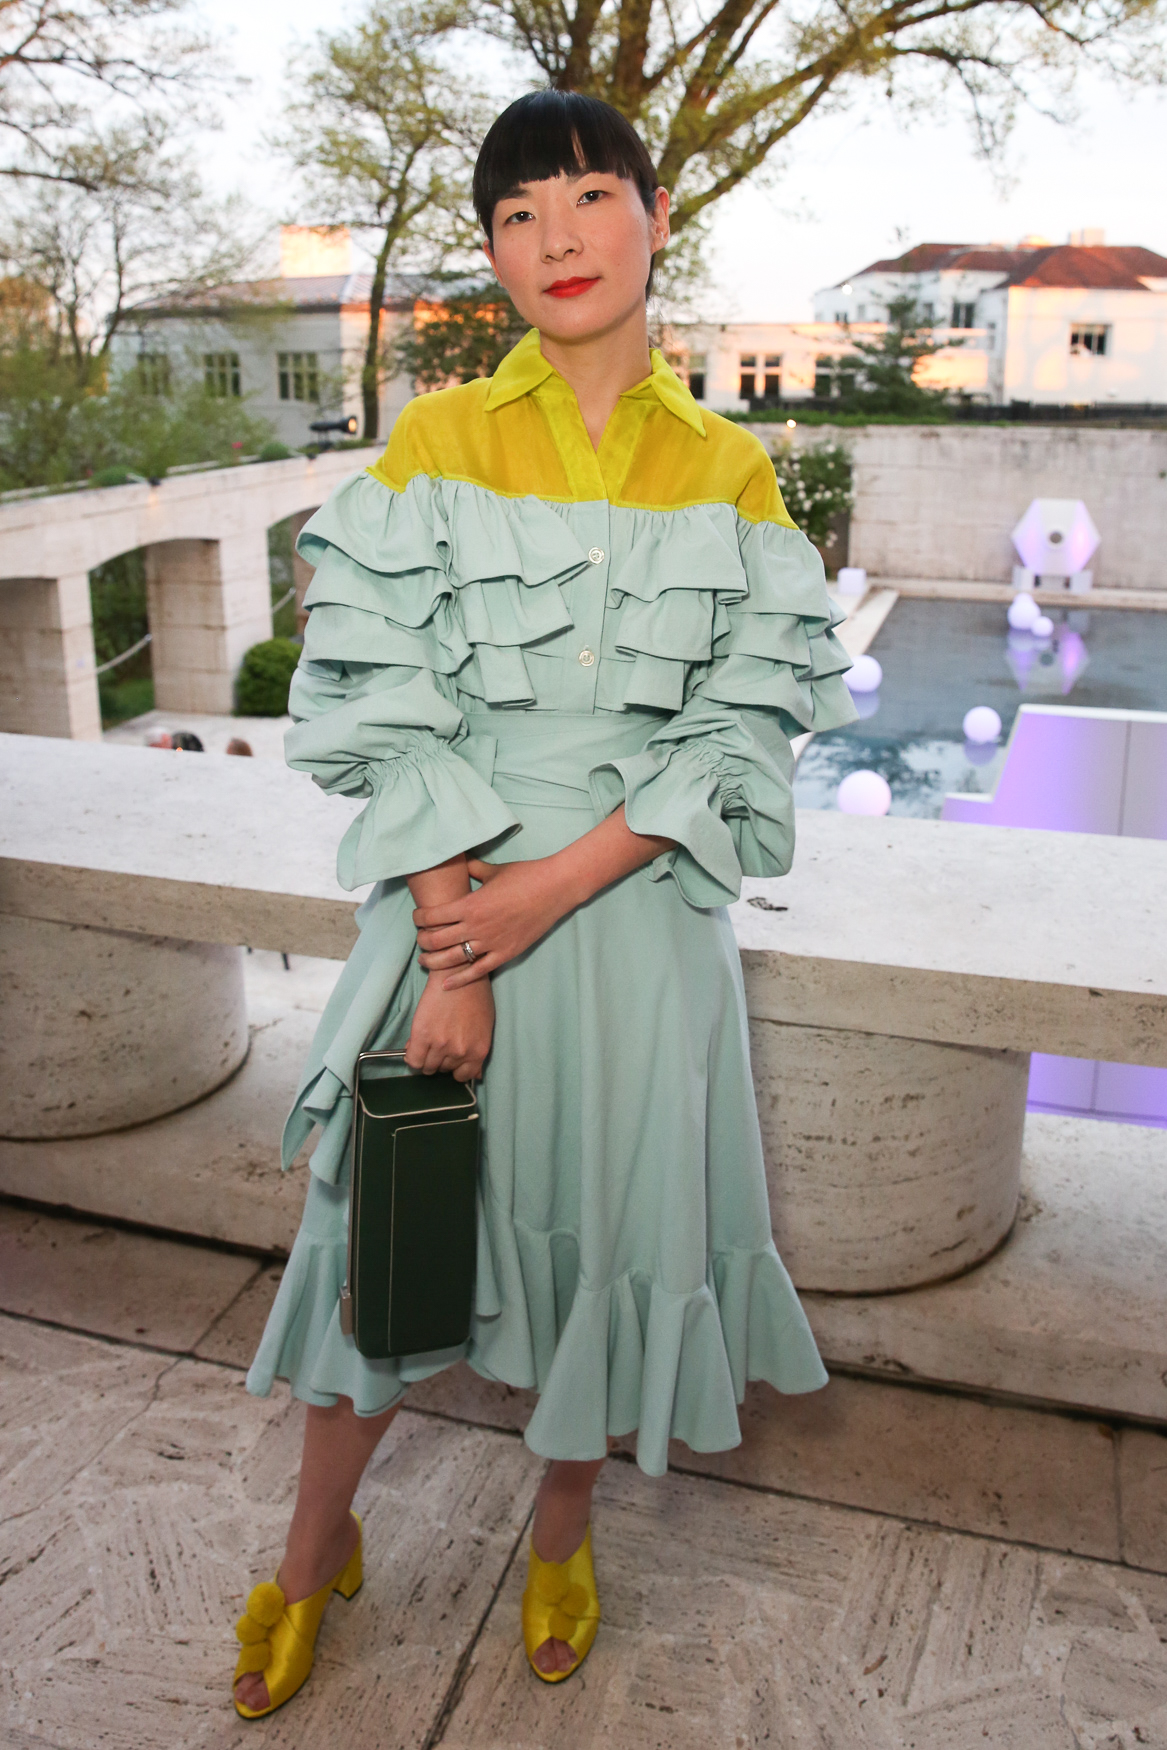 Monling Lee looked spot on and perfectly color blocked in this bright frock and coordinated shoes.{ }(Amanda Andrade-Rhoades/DC Refined)